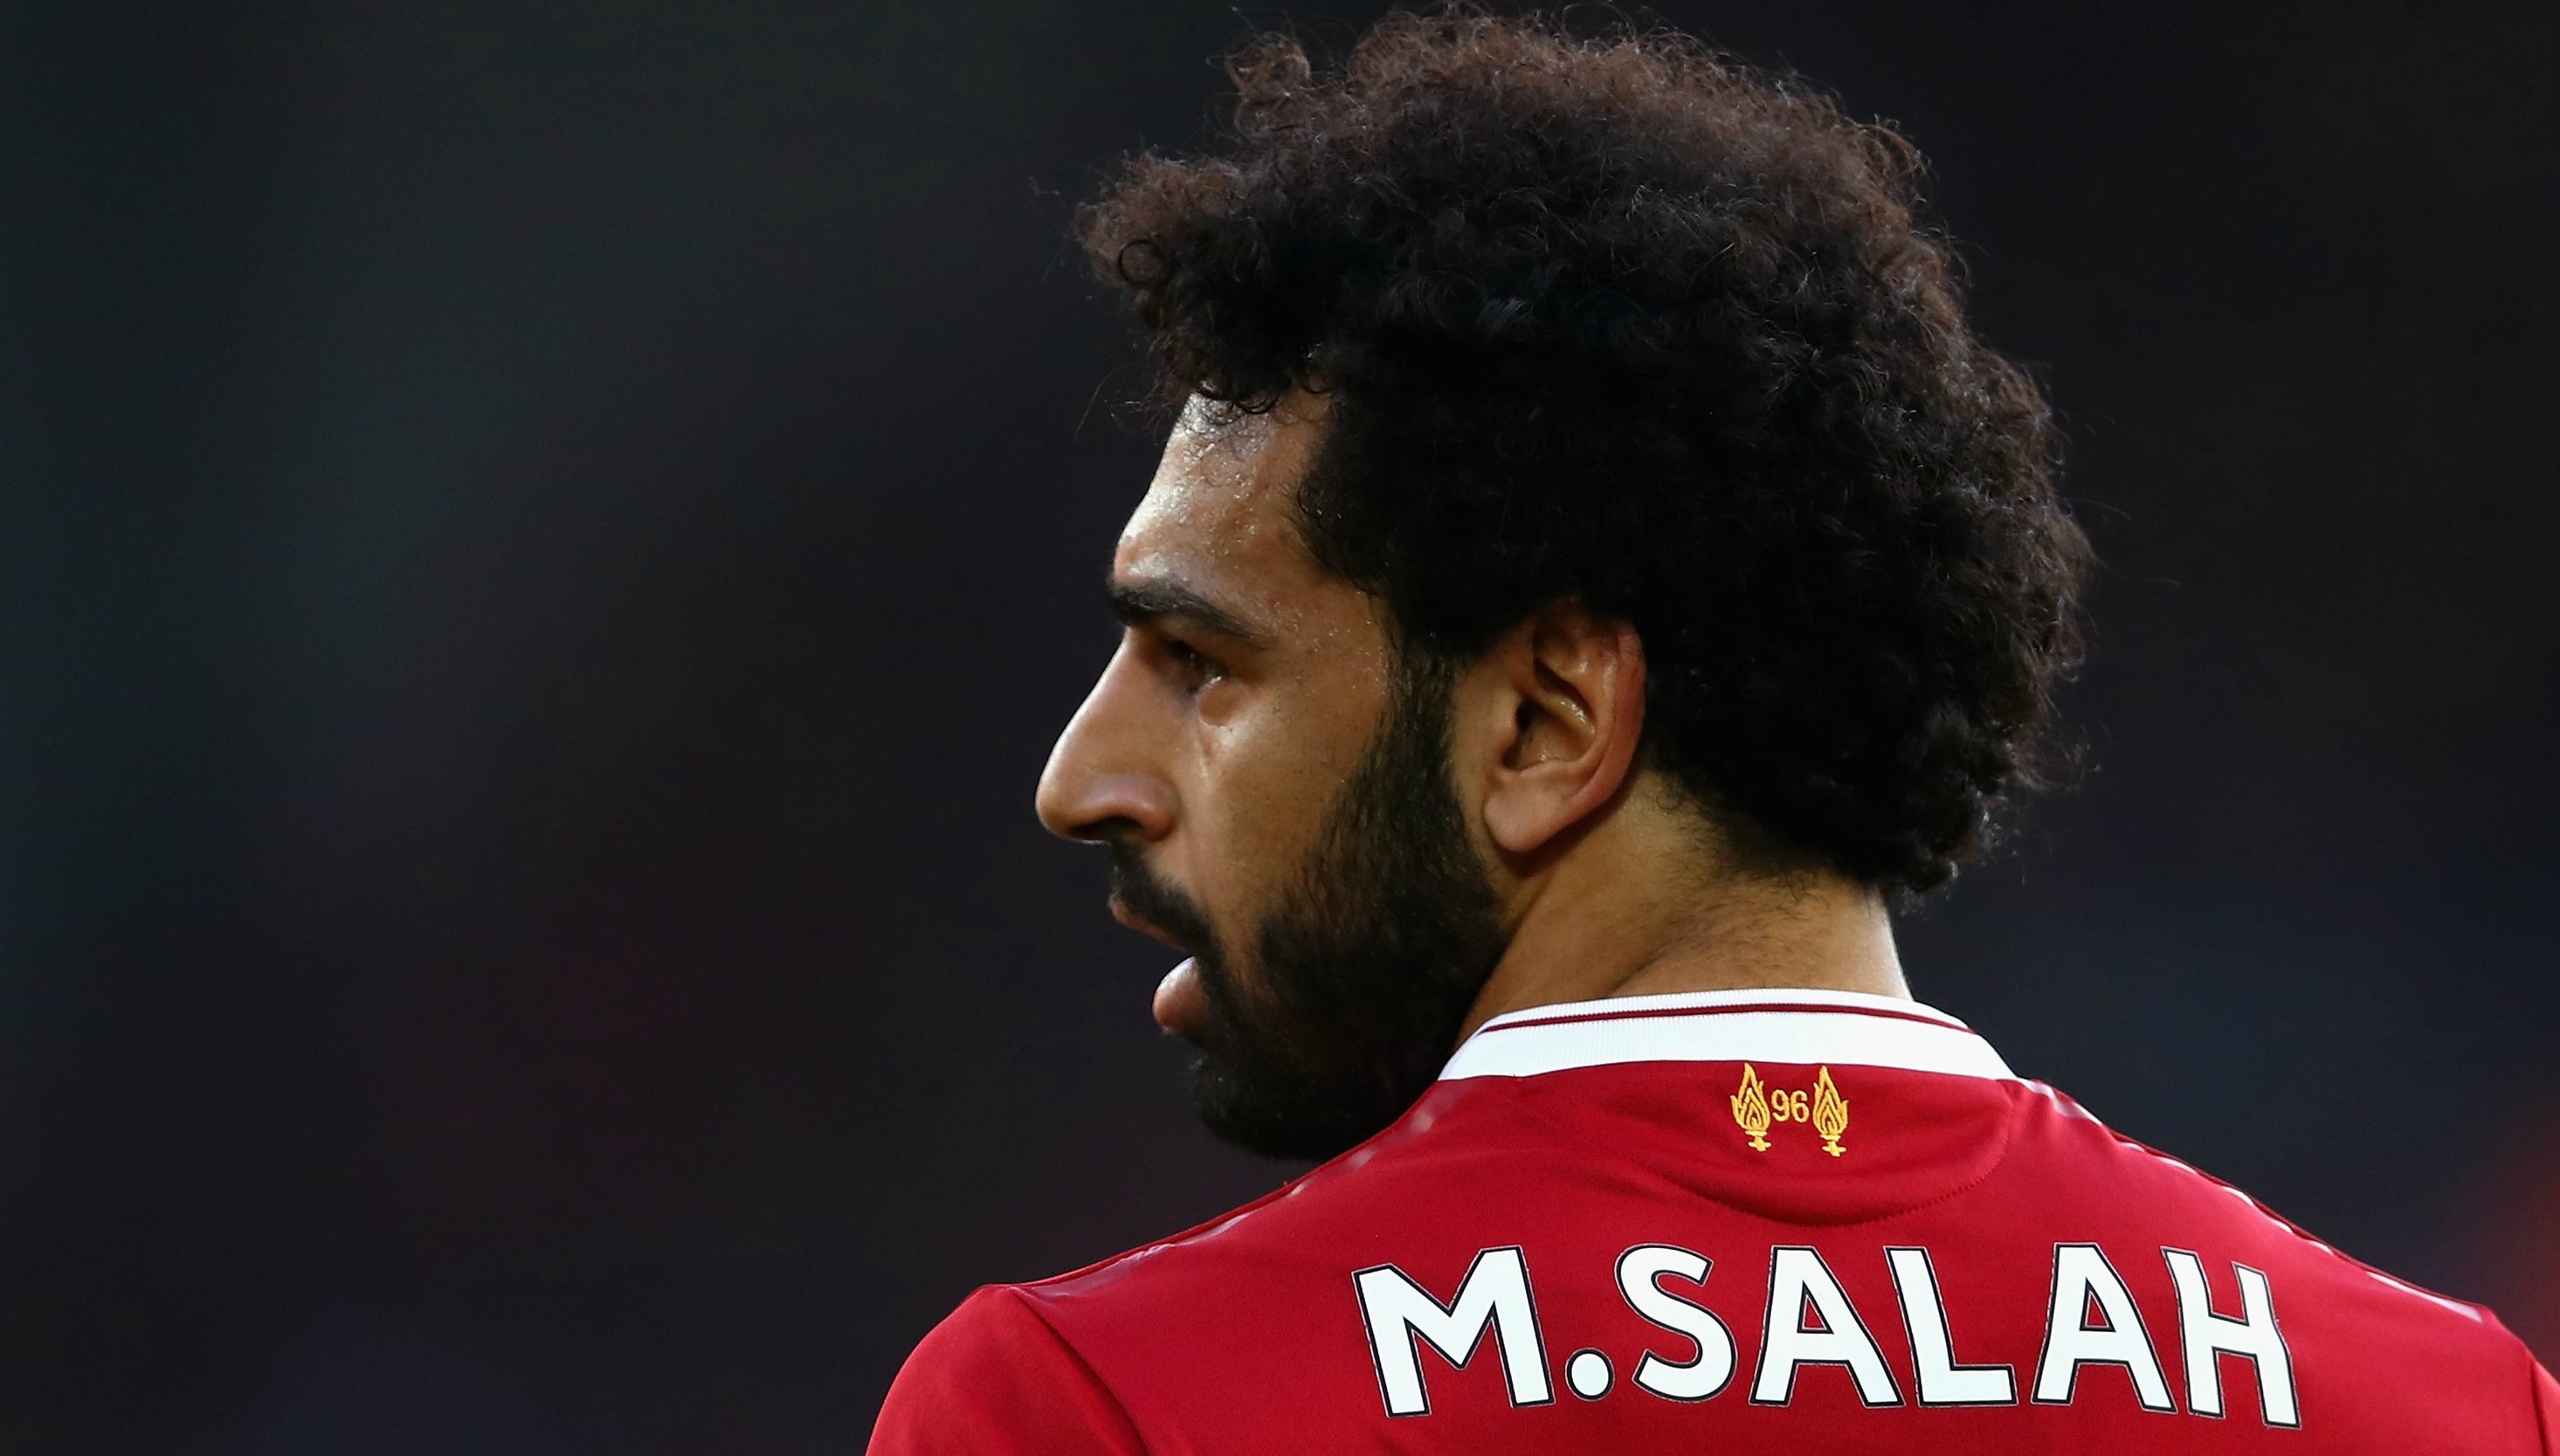 Salah Wants Golden Boot, But Winning Comes First